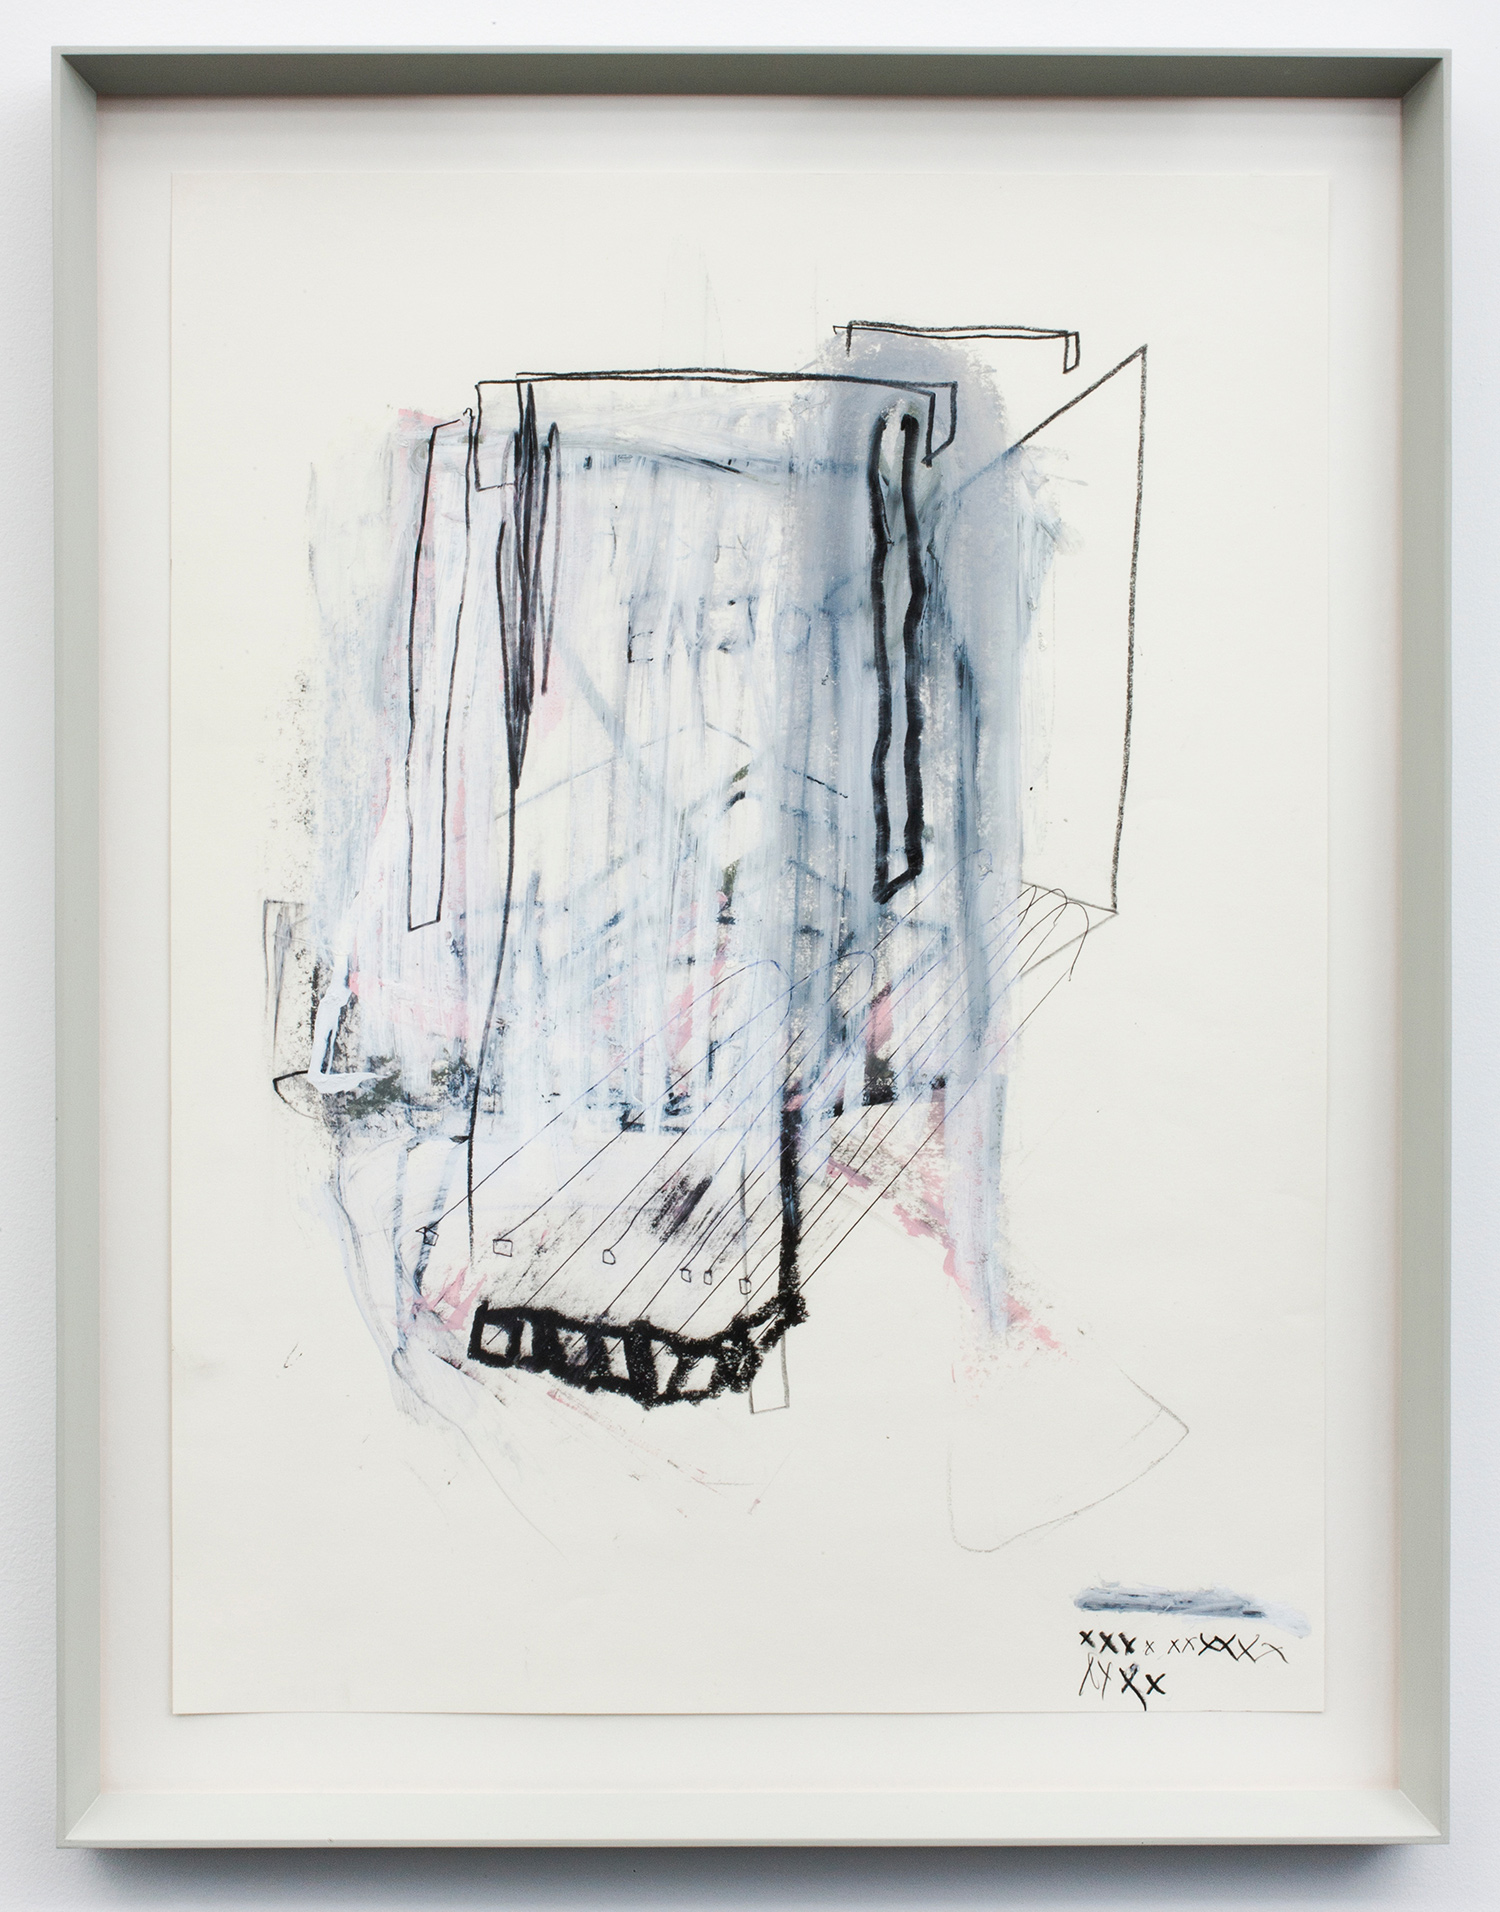 """ENJOY . Graphite, oil stick, correction fluid and ink on paper. 27.5"""" x 21.25"""". 2012."""